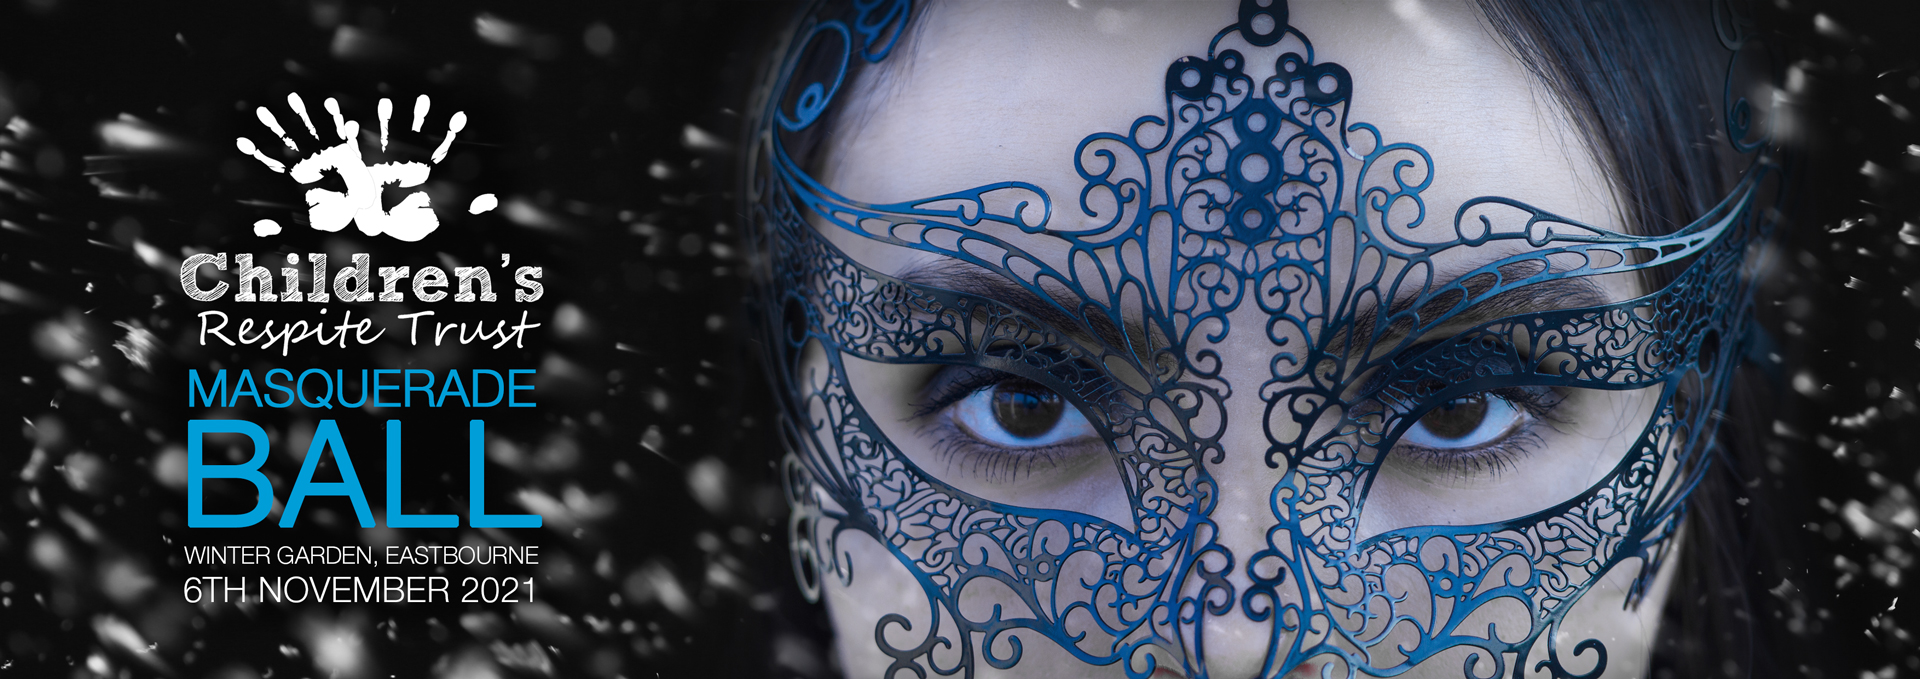 Sussex Children's Charity Masquerade Ball supporting disabled children in Sussex and Kent